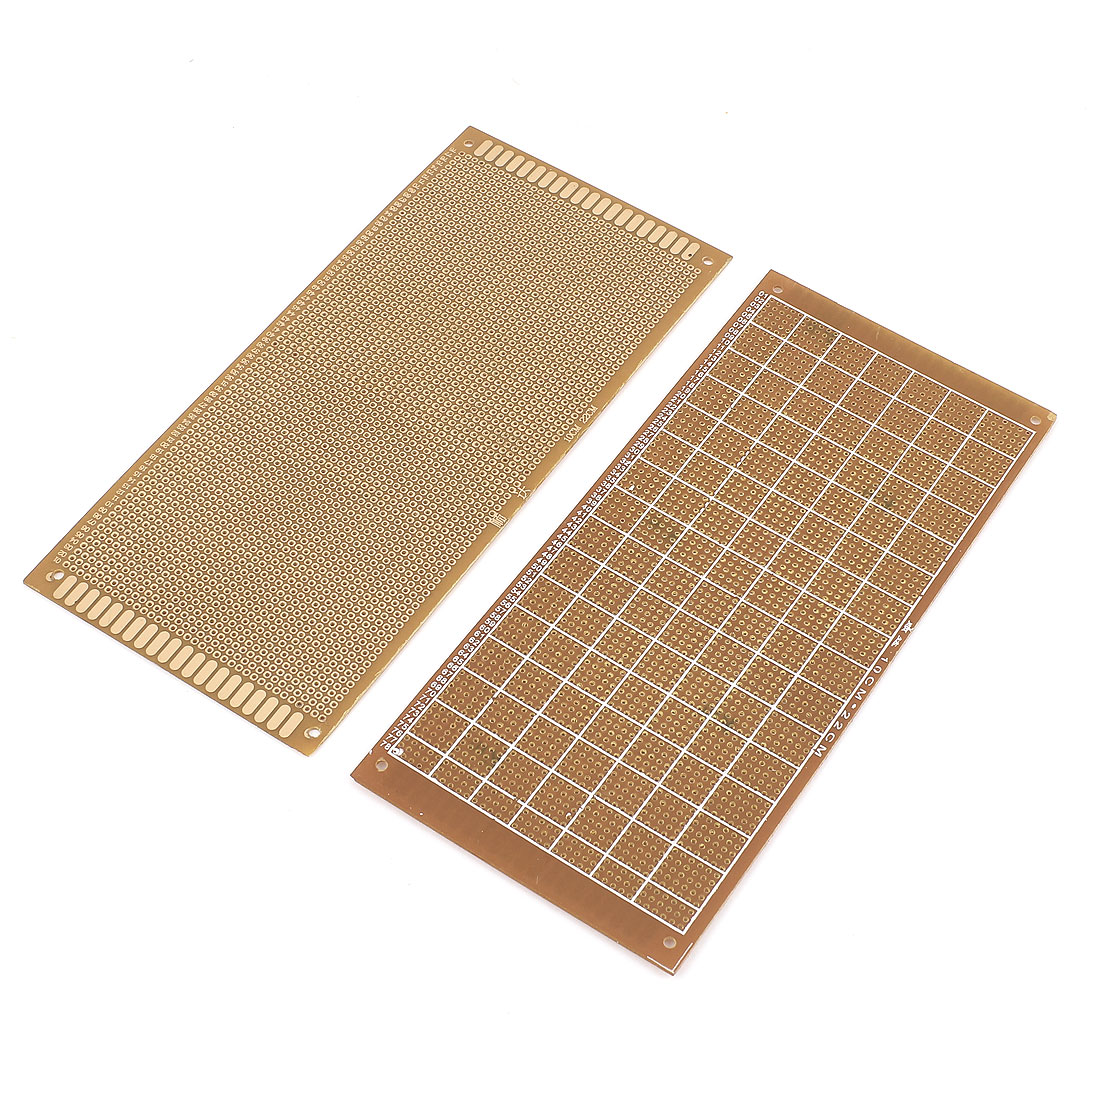 2pcs Single-sided PCB Printed Circuit Board Prototype Breadboard 22cm x 10cm